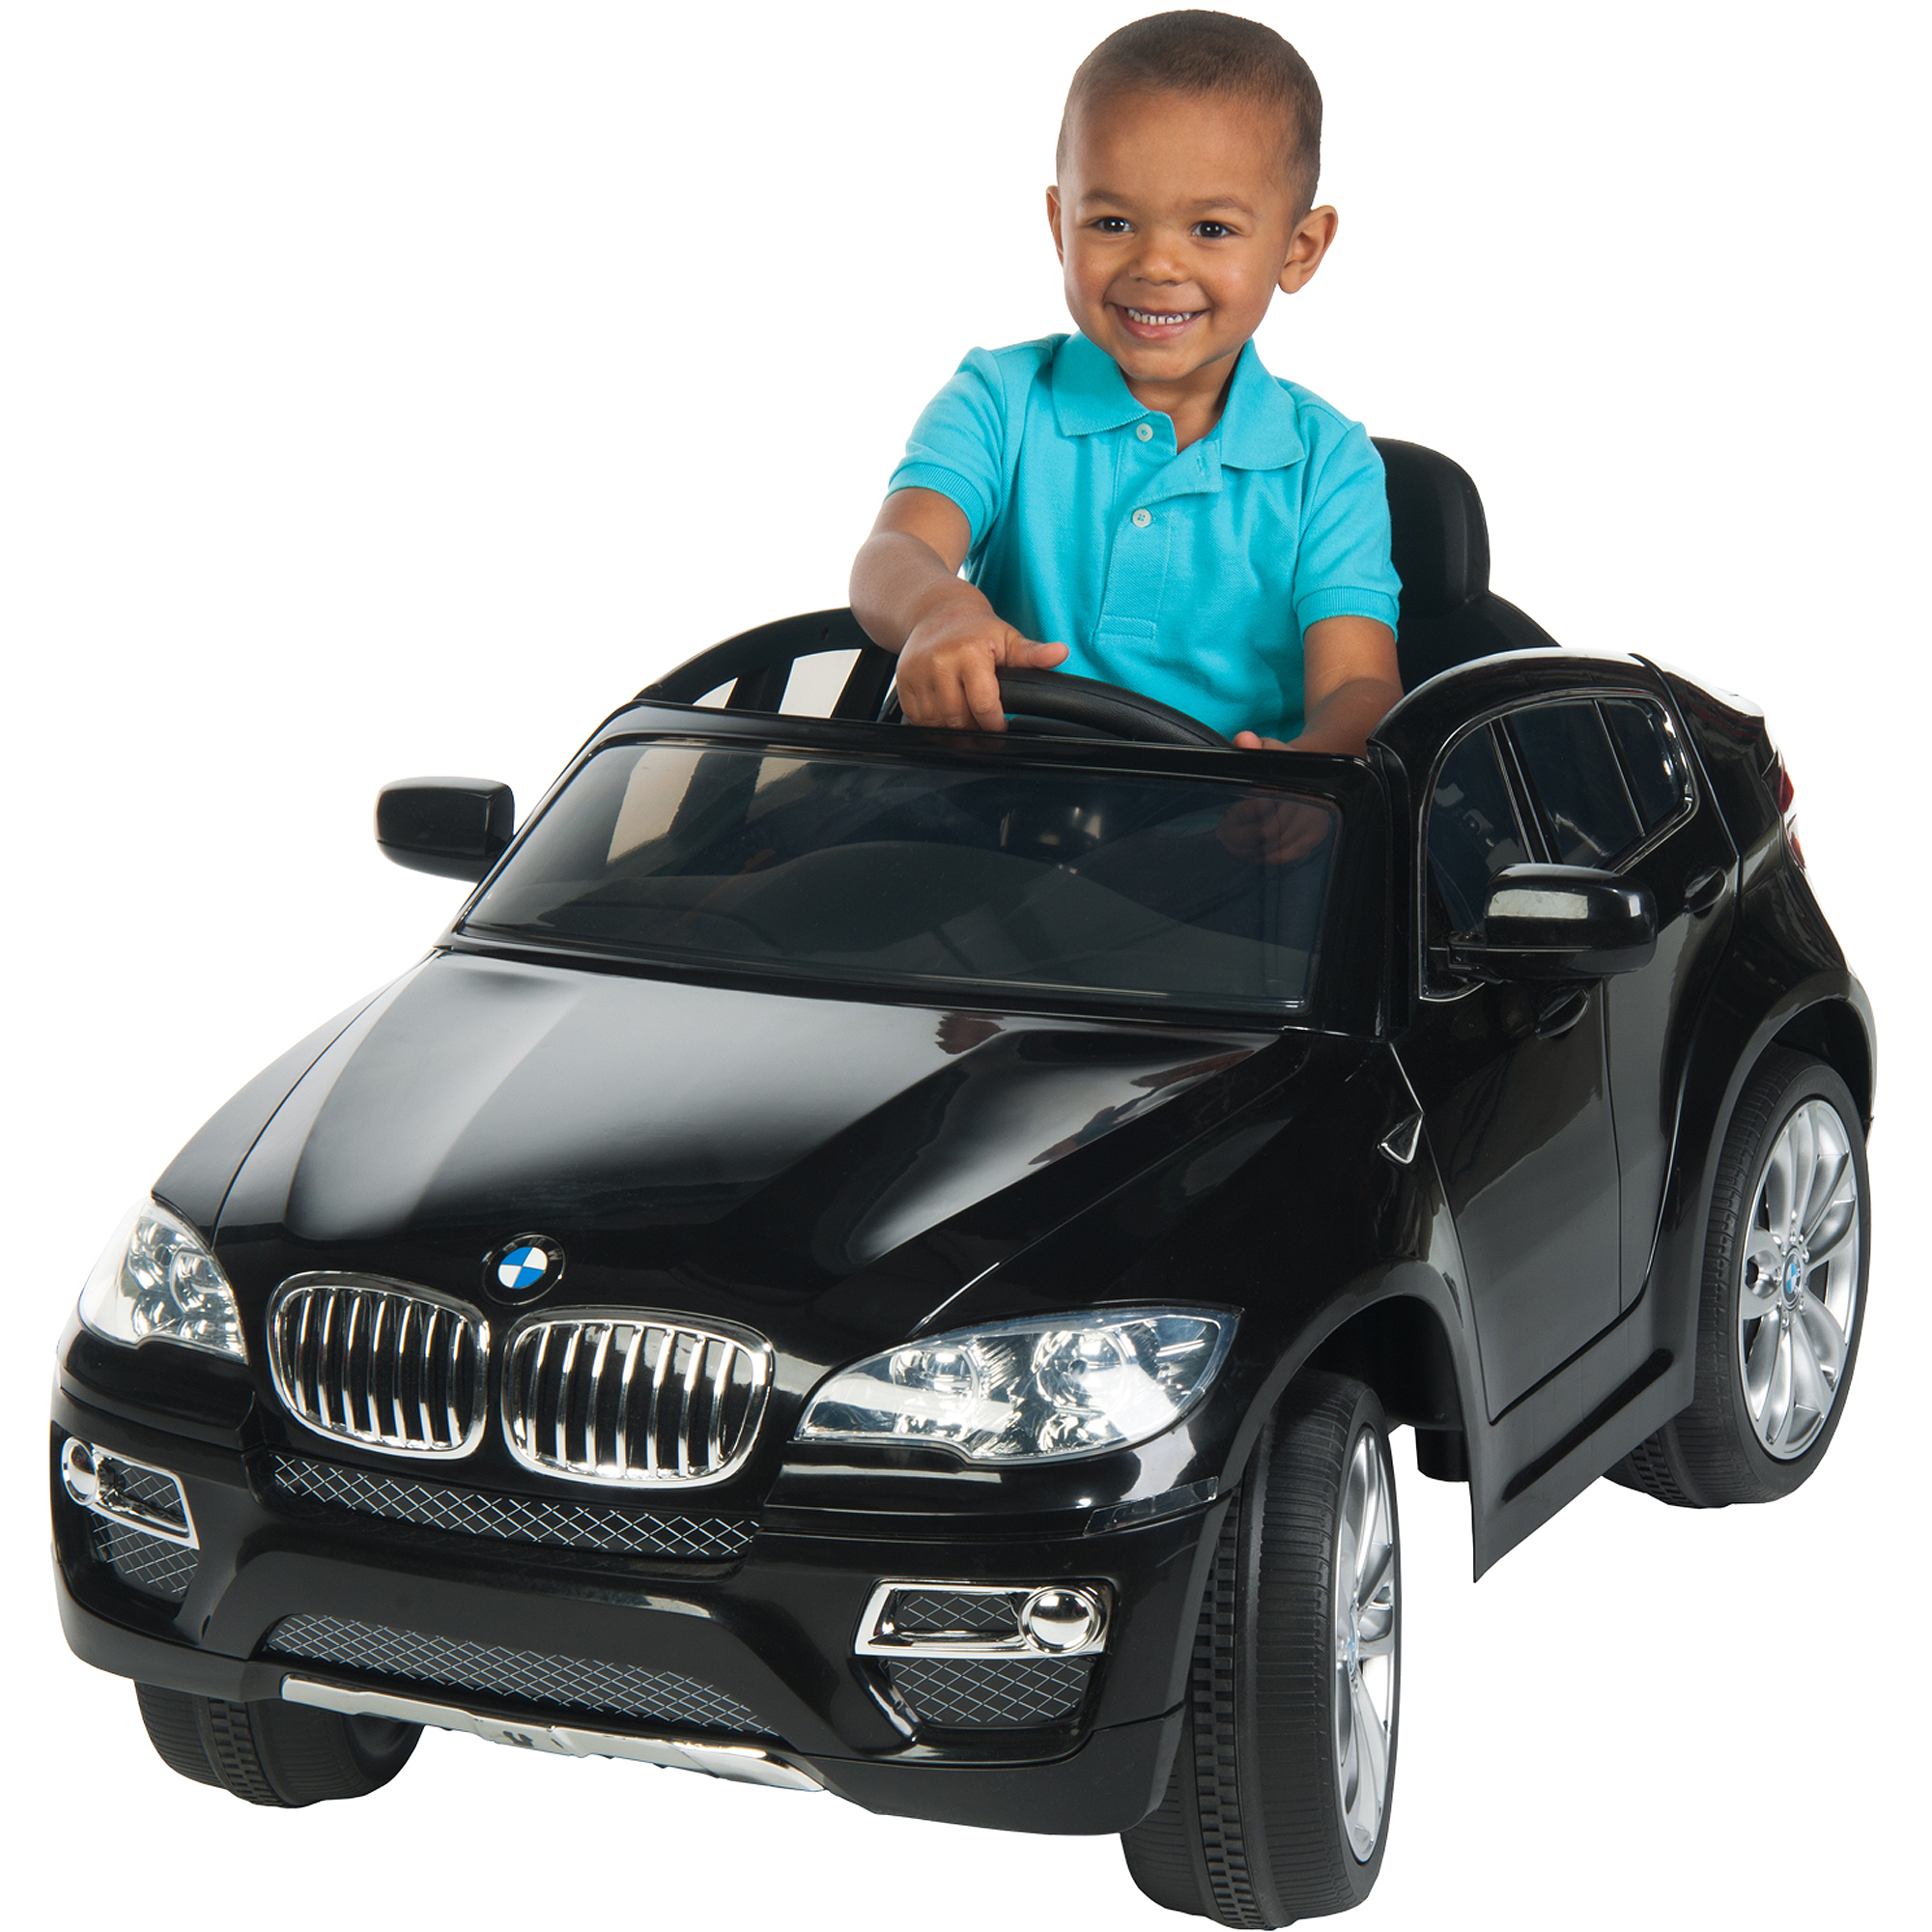 Bmw X6 6 Volt Battery Powered Ride On Toy Car By Huffy Club Power Drive Charger Wiring Diagram